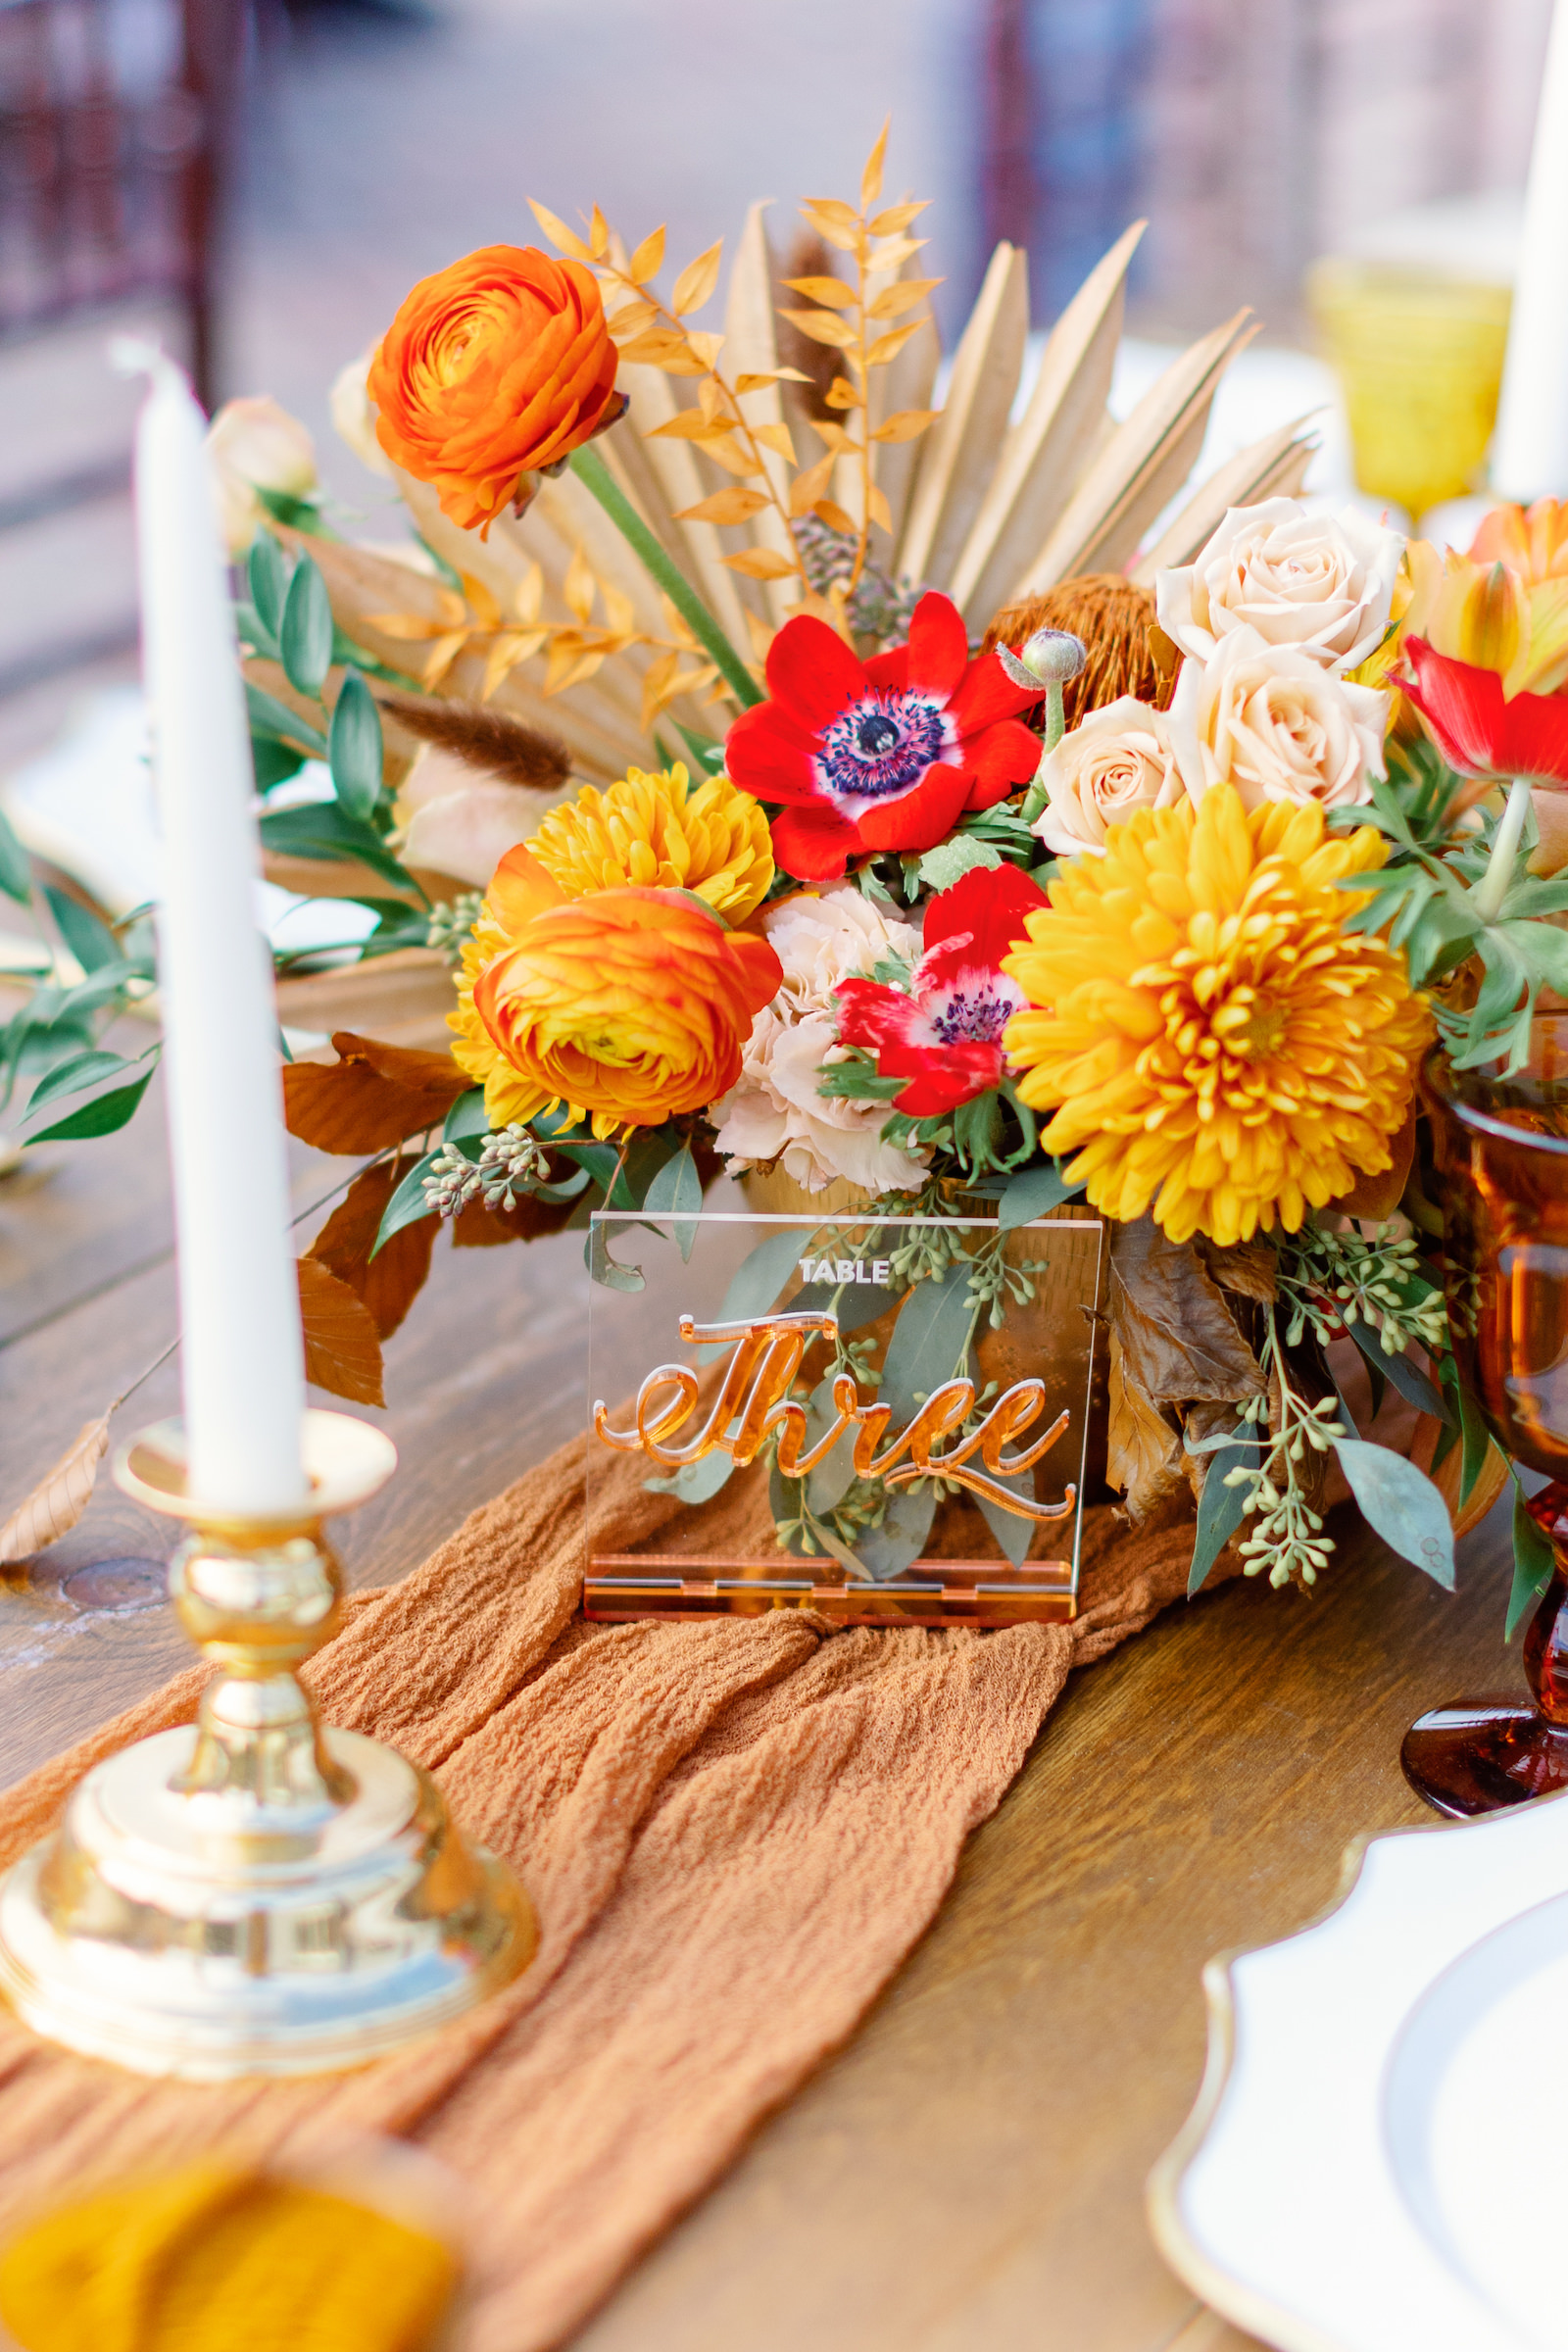 Modern Boho Inspired Florida Wedding Reception and Decor   Long Wooden Feasting Table with Orange Linen Table Runner with Long White Candles and Gold Candleholder, White Chargers, Acrylic Table Number, Yellow Drinking Goblets, Red Flowers, Marigolds Centerpiece   Tampa Bay Wedding Planner Coastal Coordinating